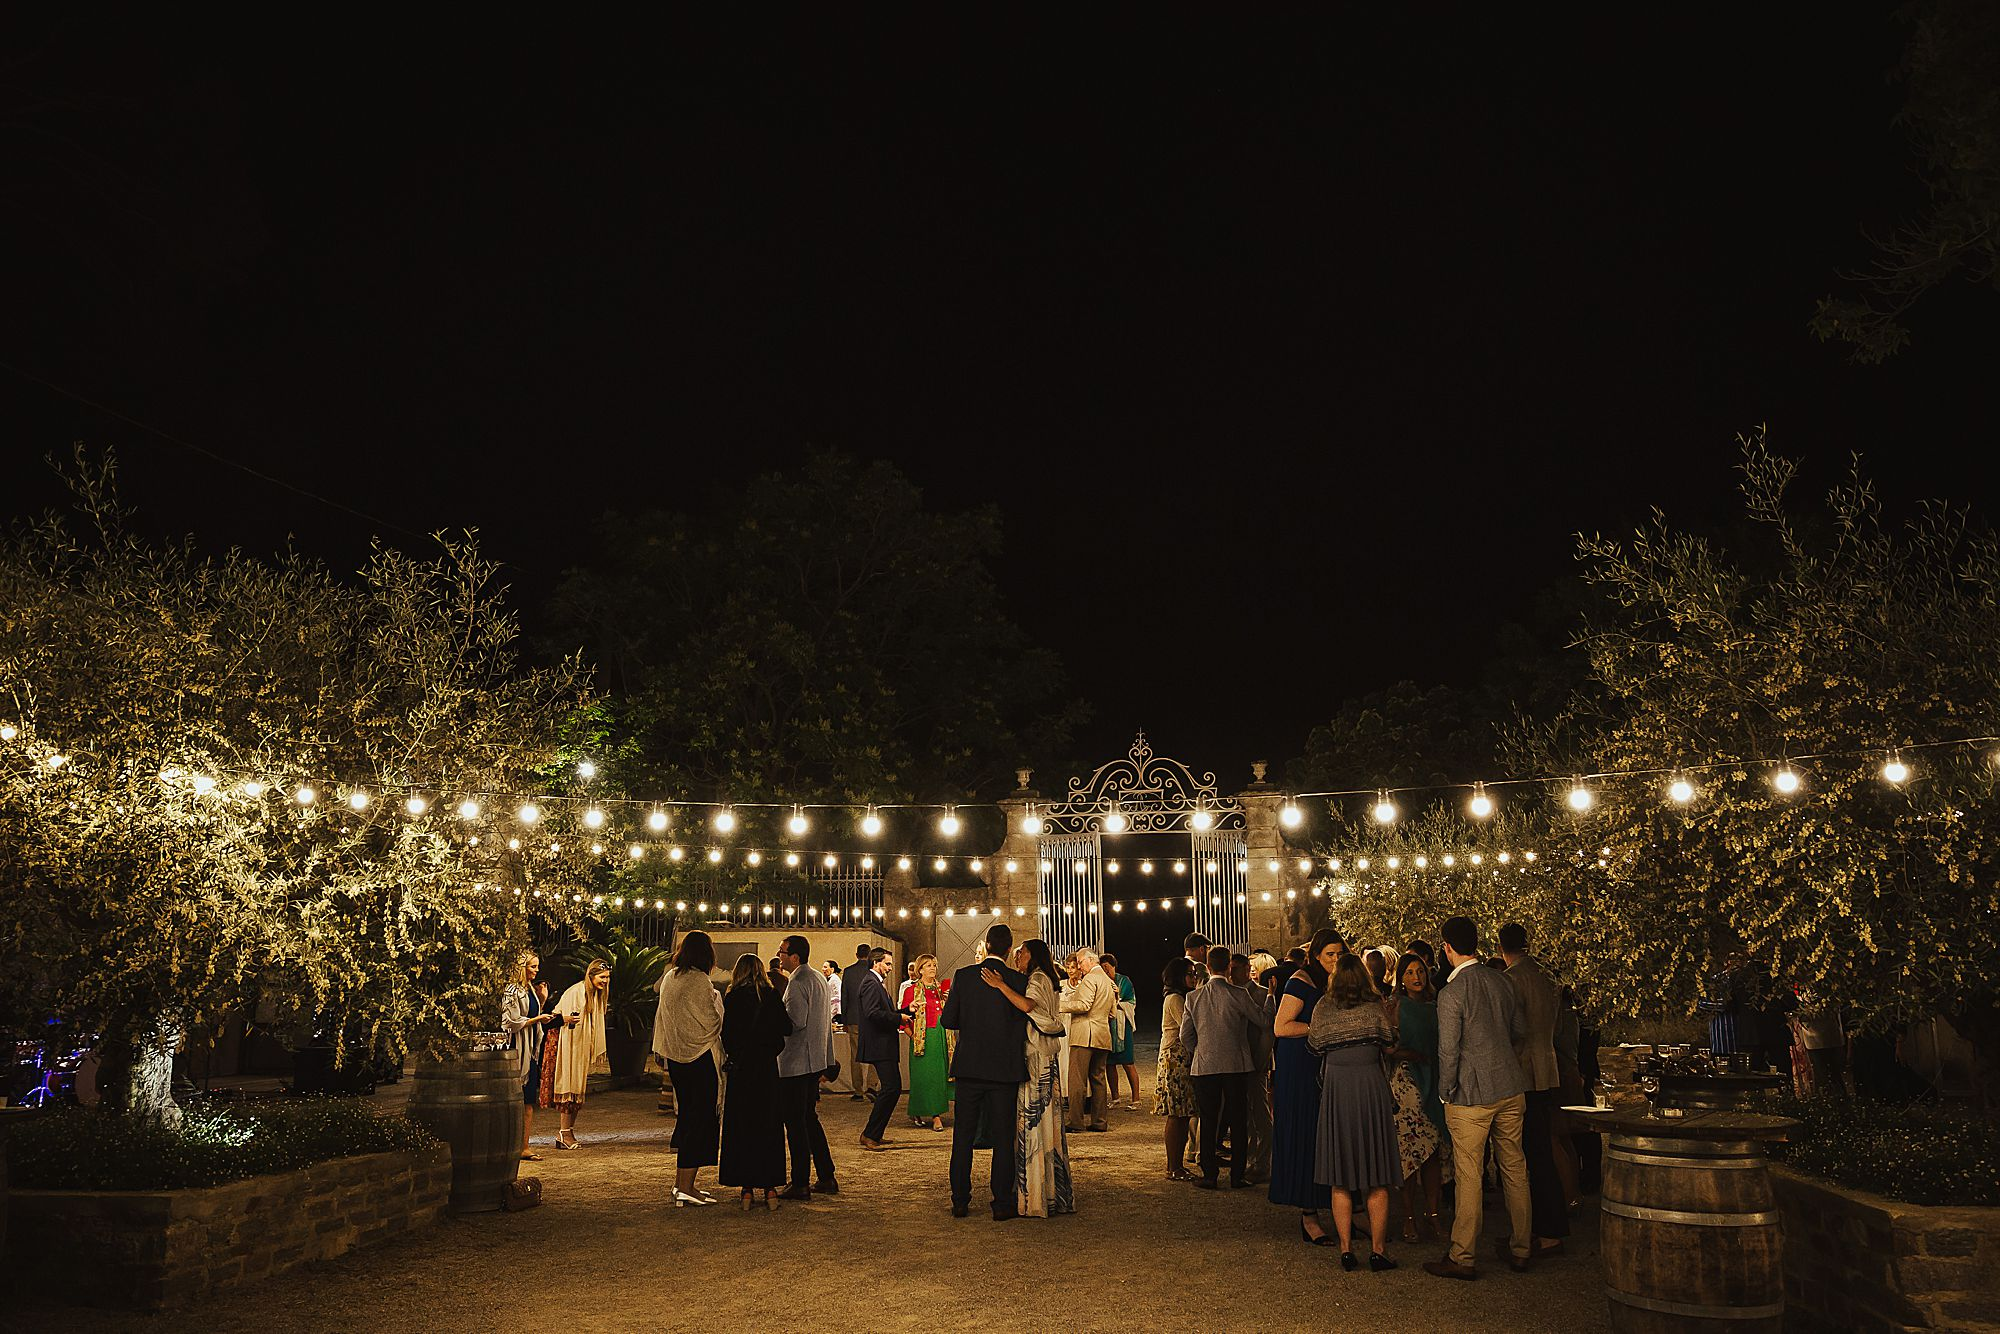 Domaine de la Grangette wedding at night